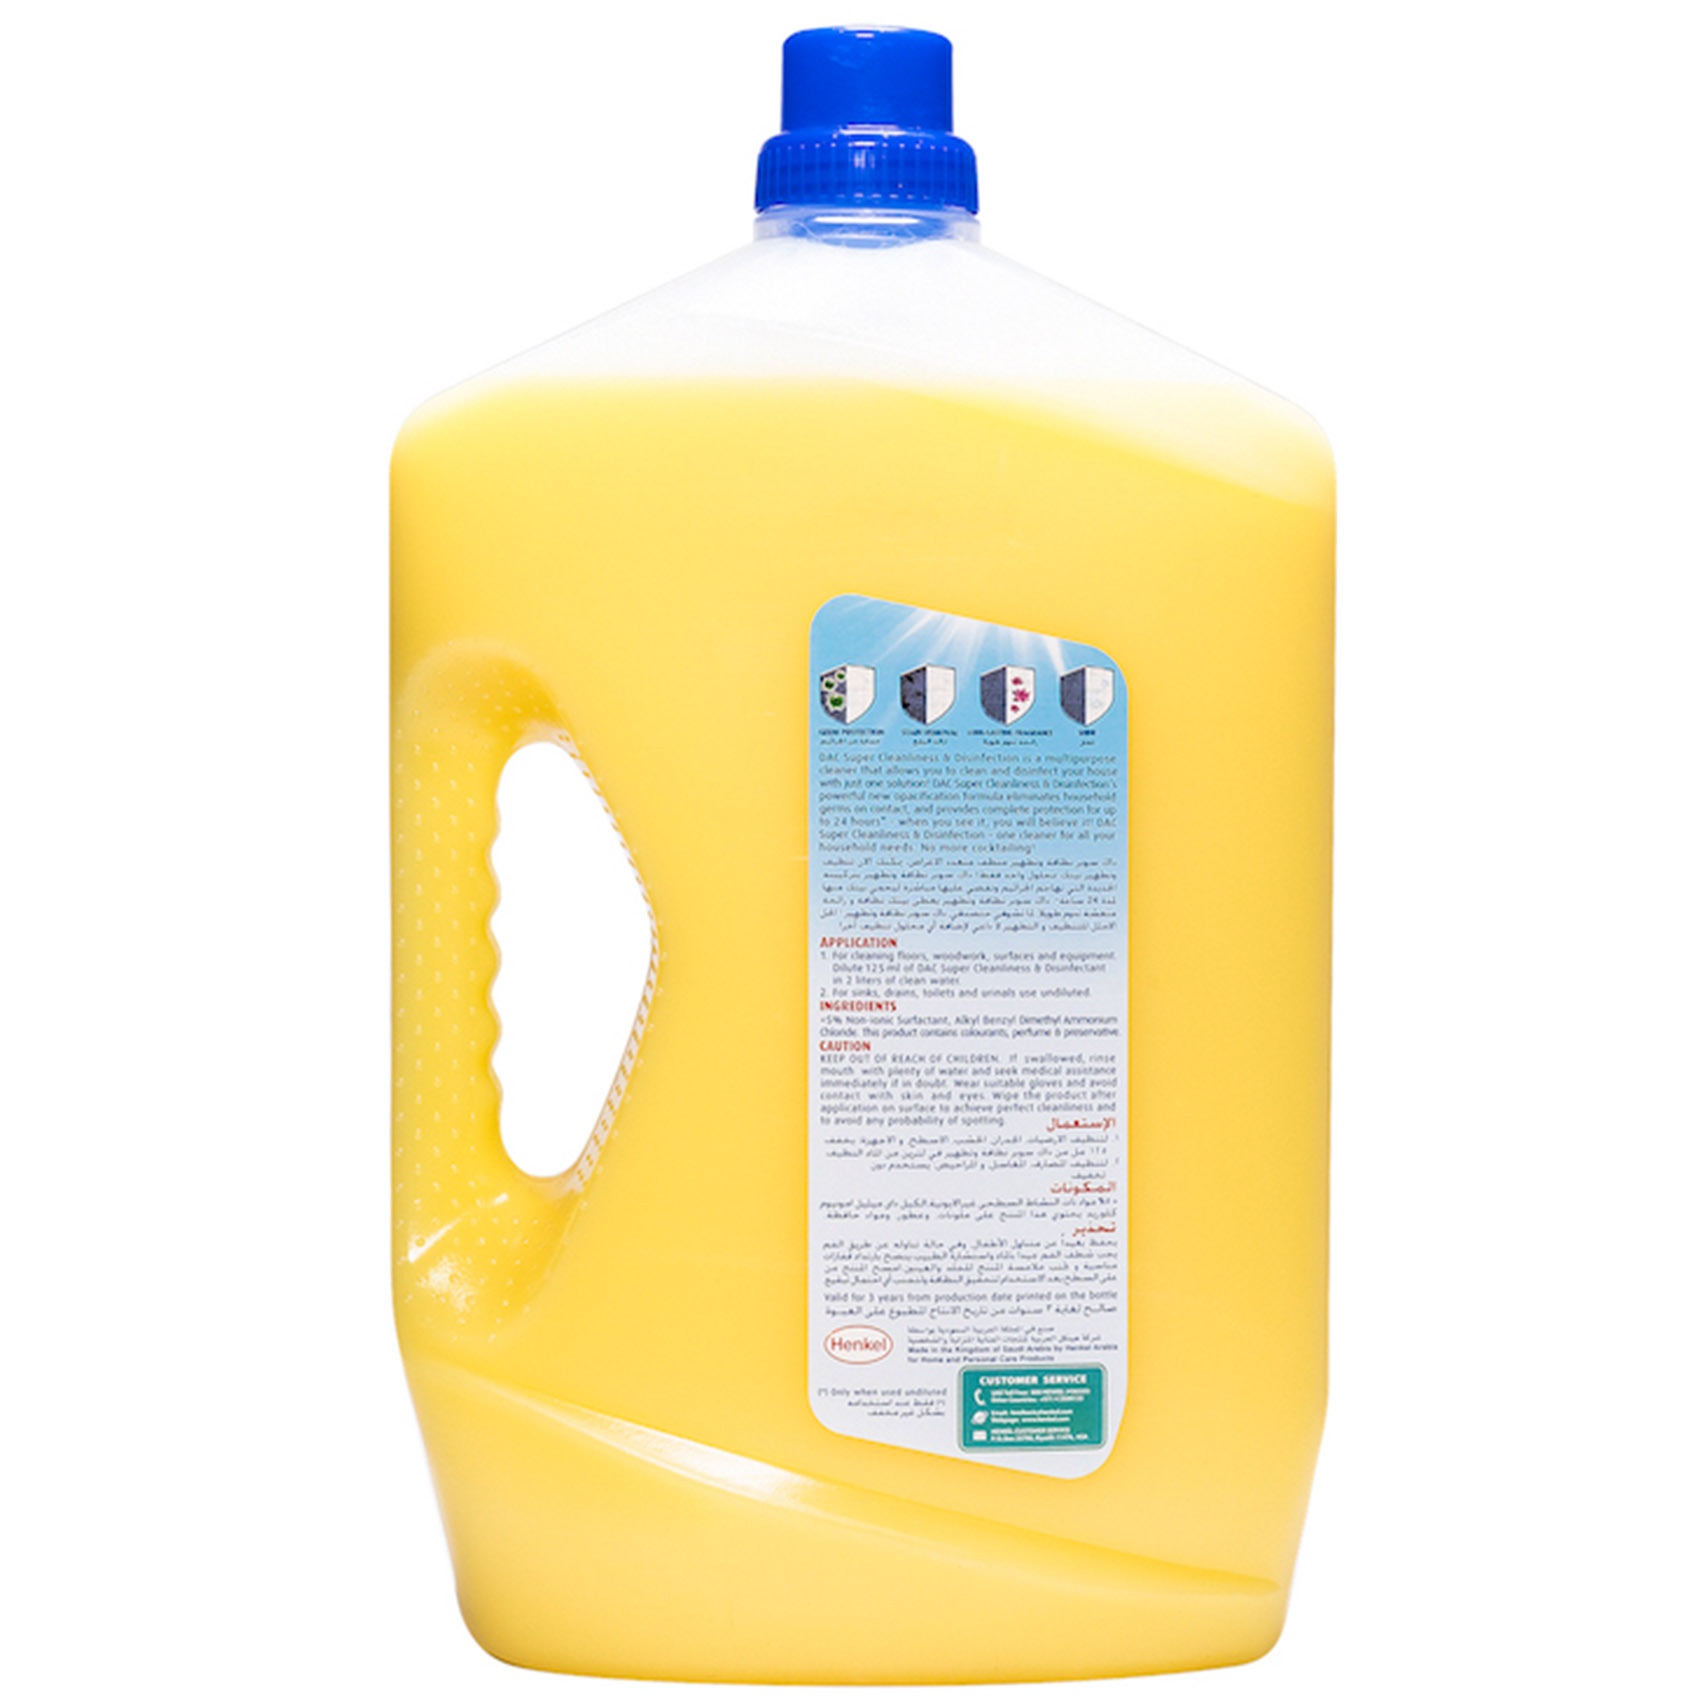 DAC DISINFECTANT PLUS MPC LEMON3 L